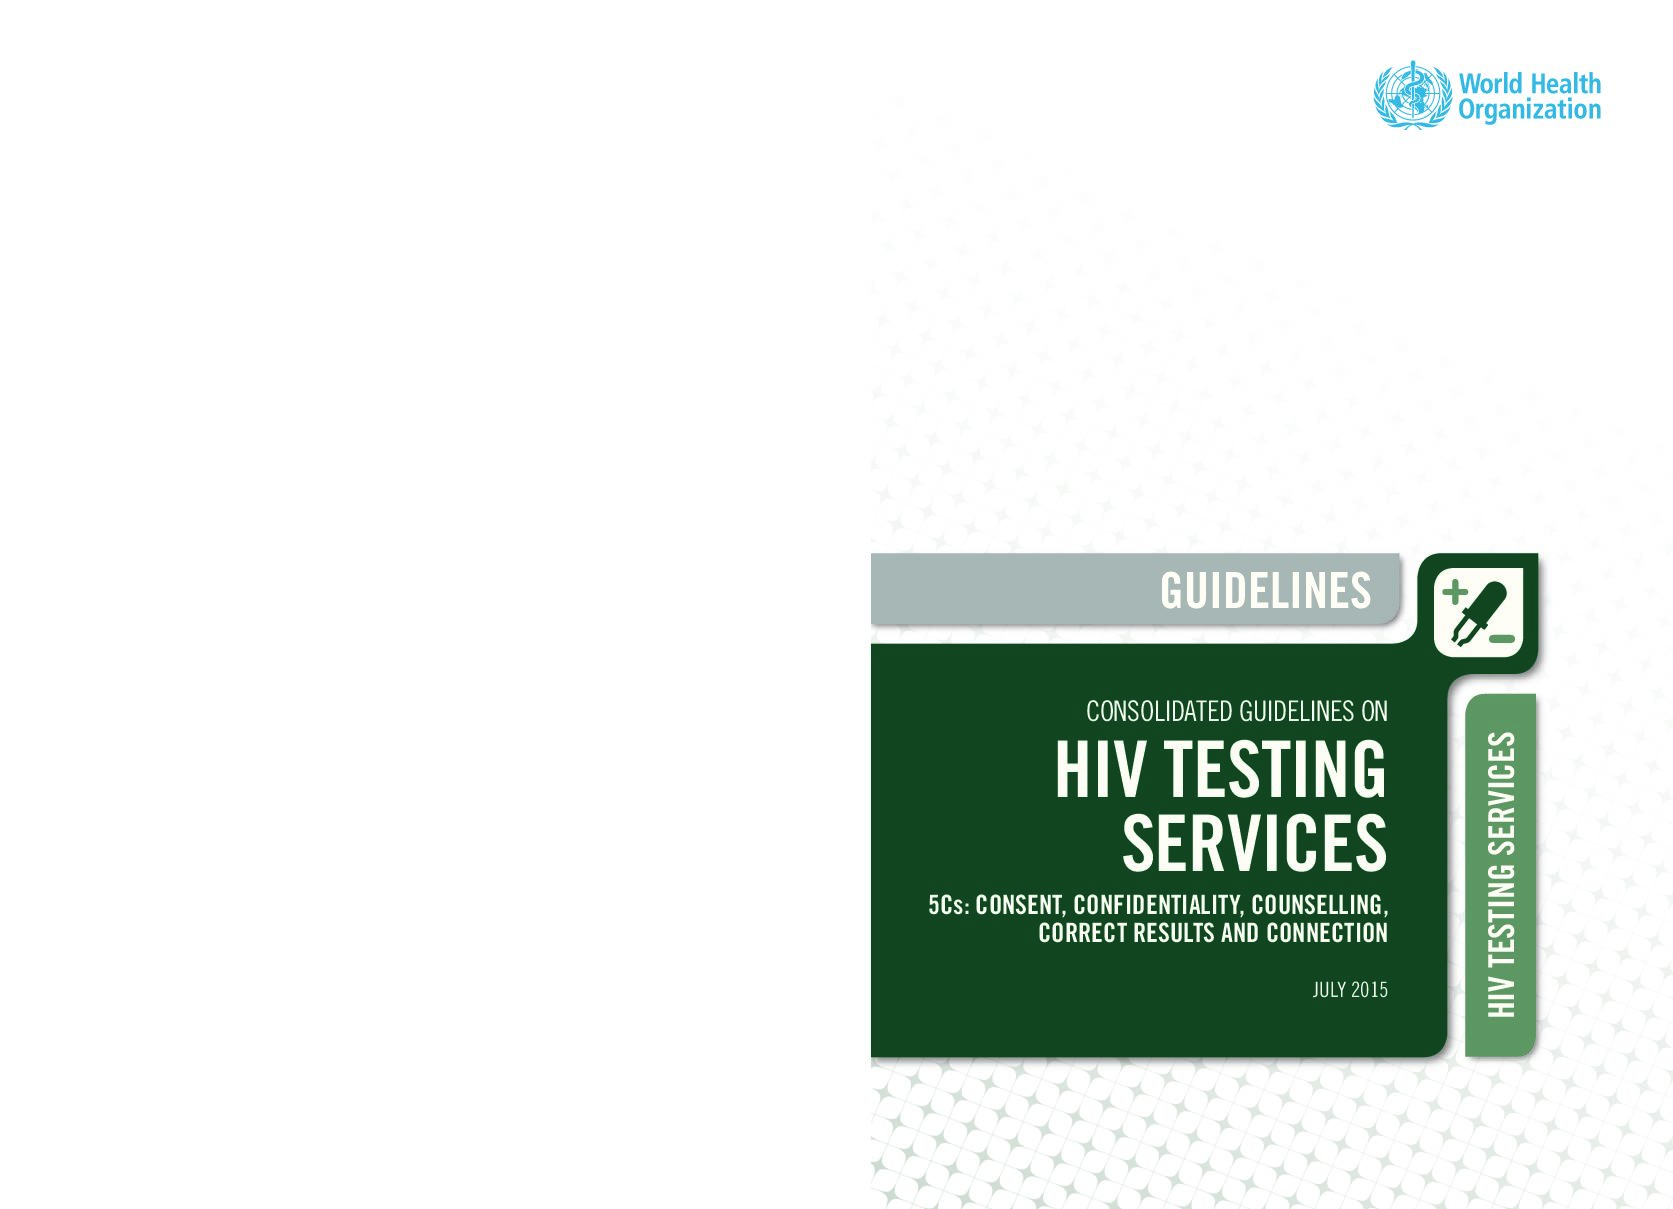 Consolidated guidelines on HIV testing services 5Cs consent, confidentiality, counselling, correct results and connection. 2015.